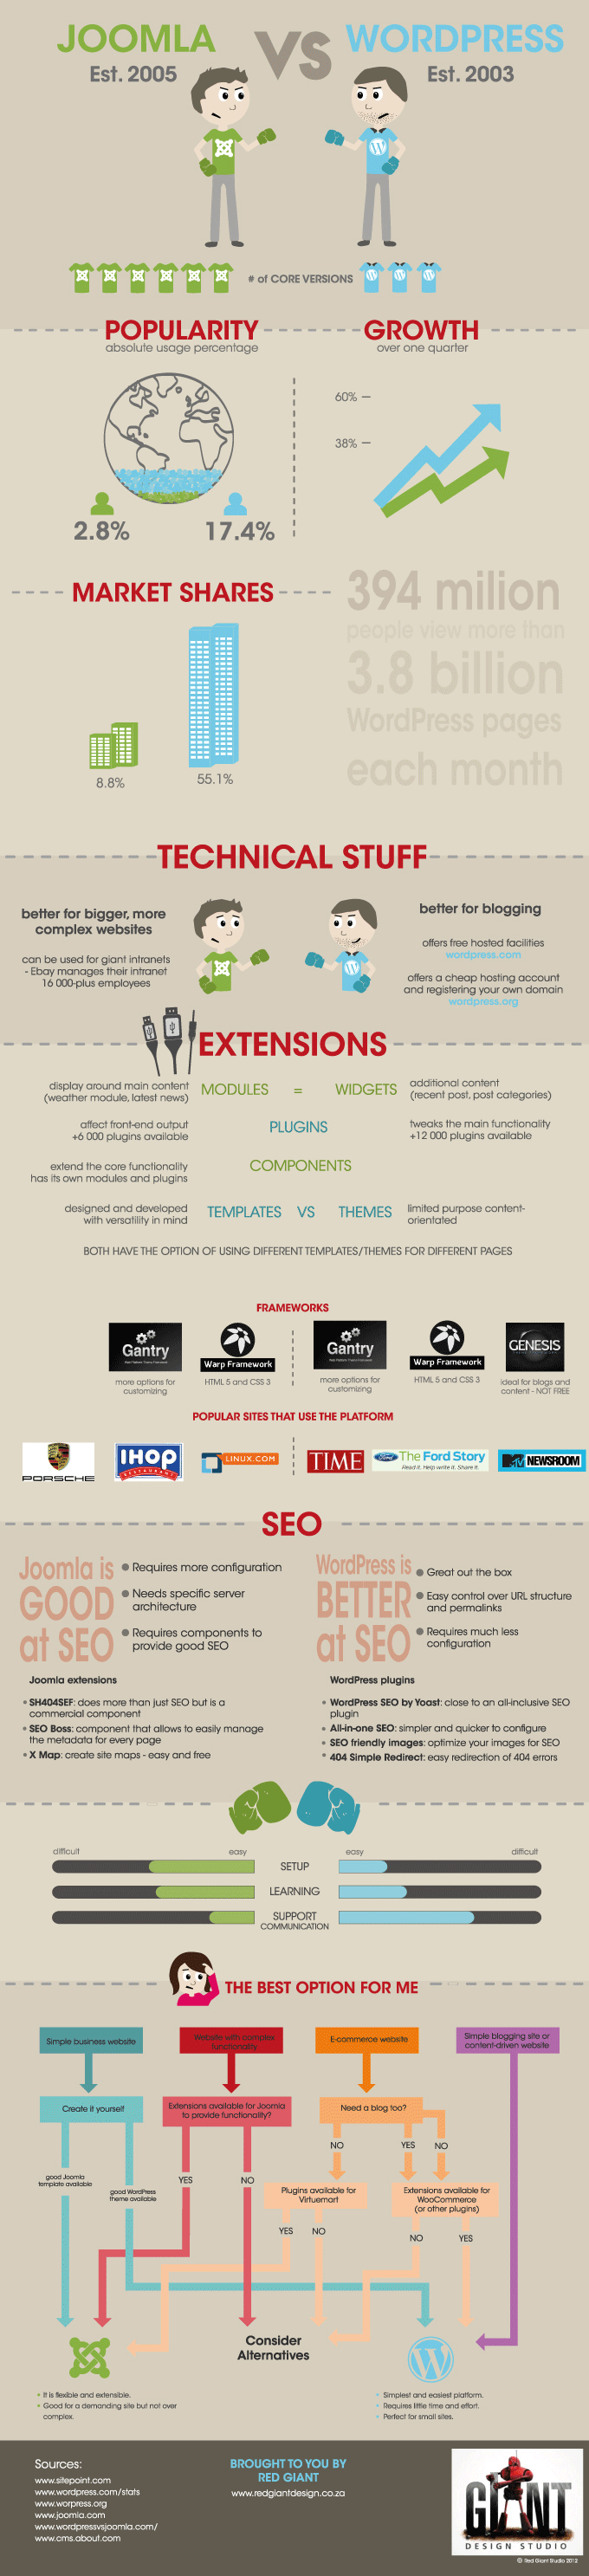 Wordpress_vs_Joomla_2013_Infographic